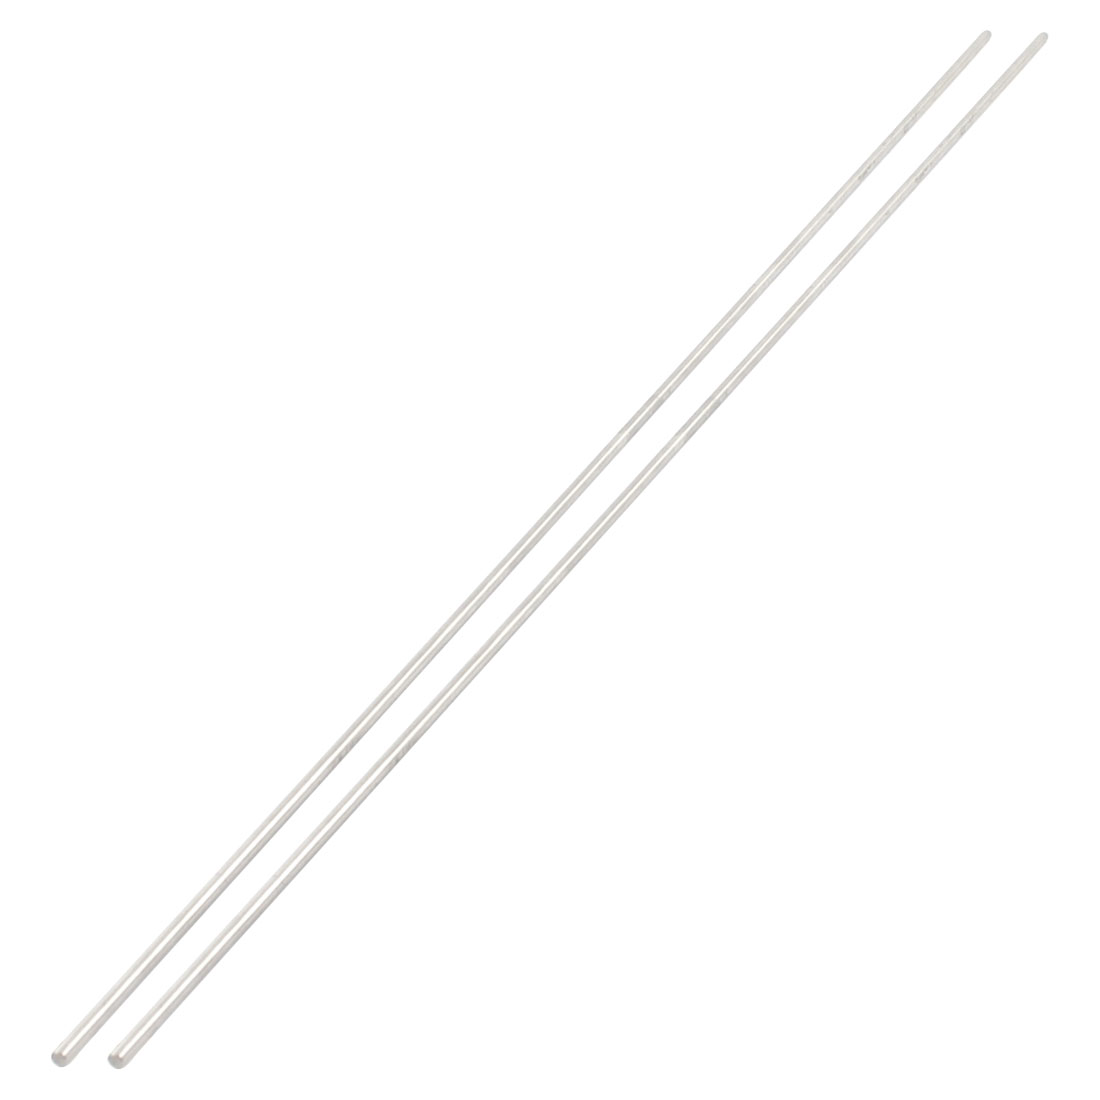 2 Pcs 2.5mm Dia 450mm Length Stainless Steel RC Car Gear Axle Rod Stick